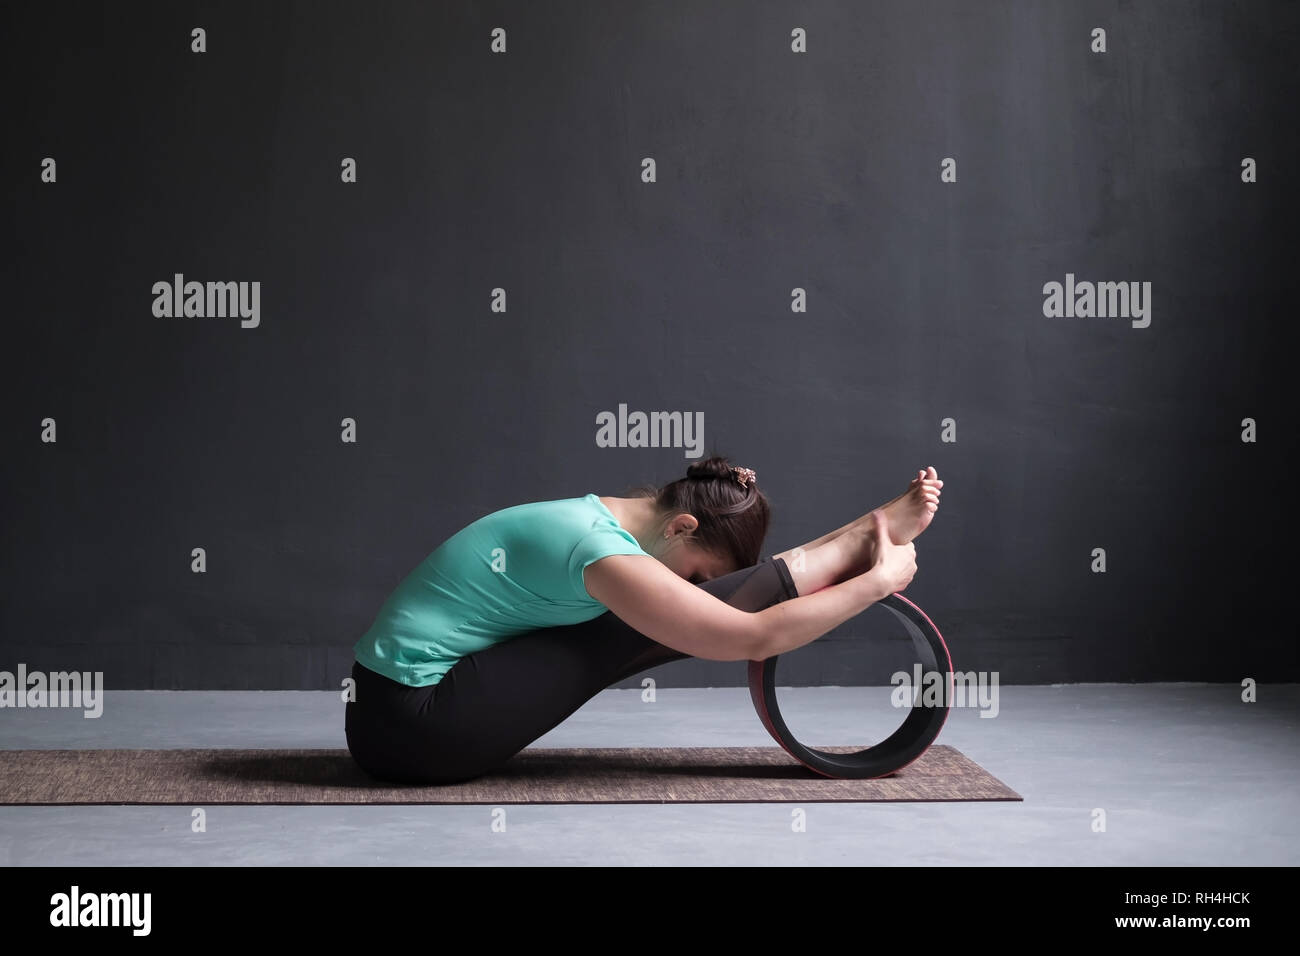 woman practicing yoga, Seated forward bend pose, working out, using wheel - Stock Image